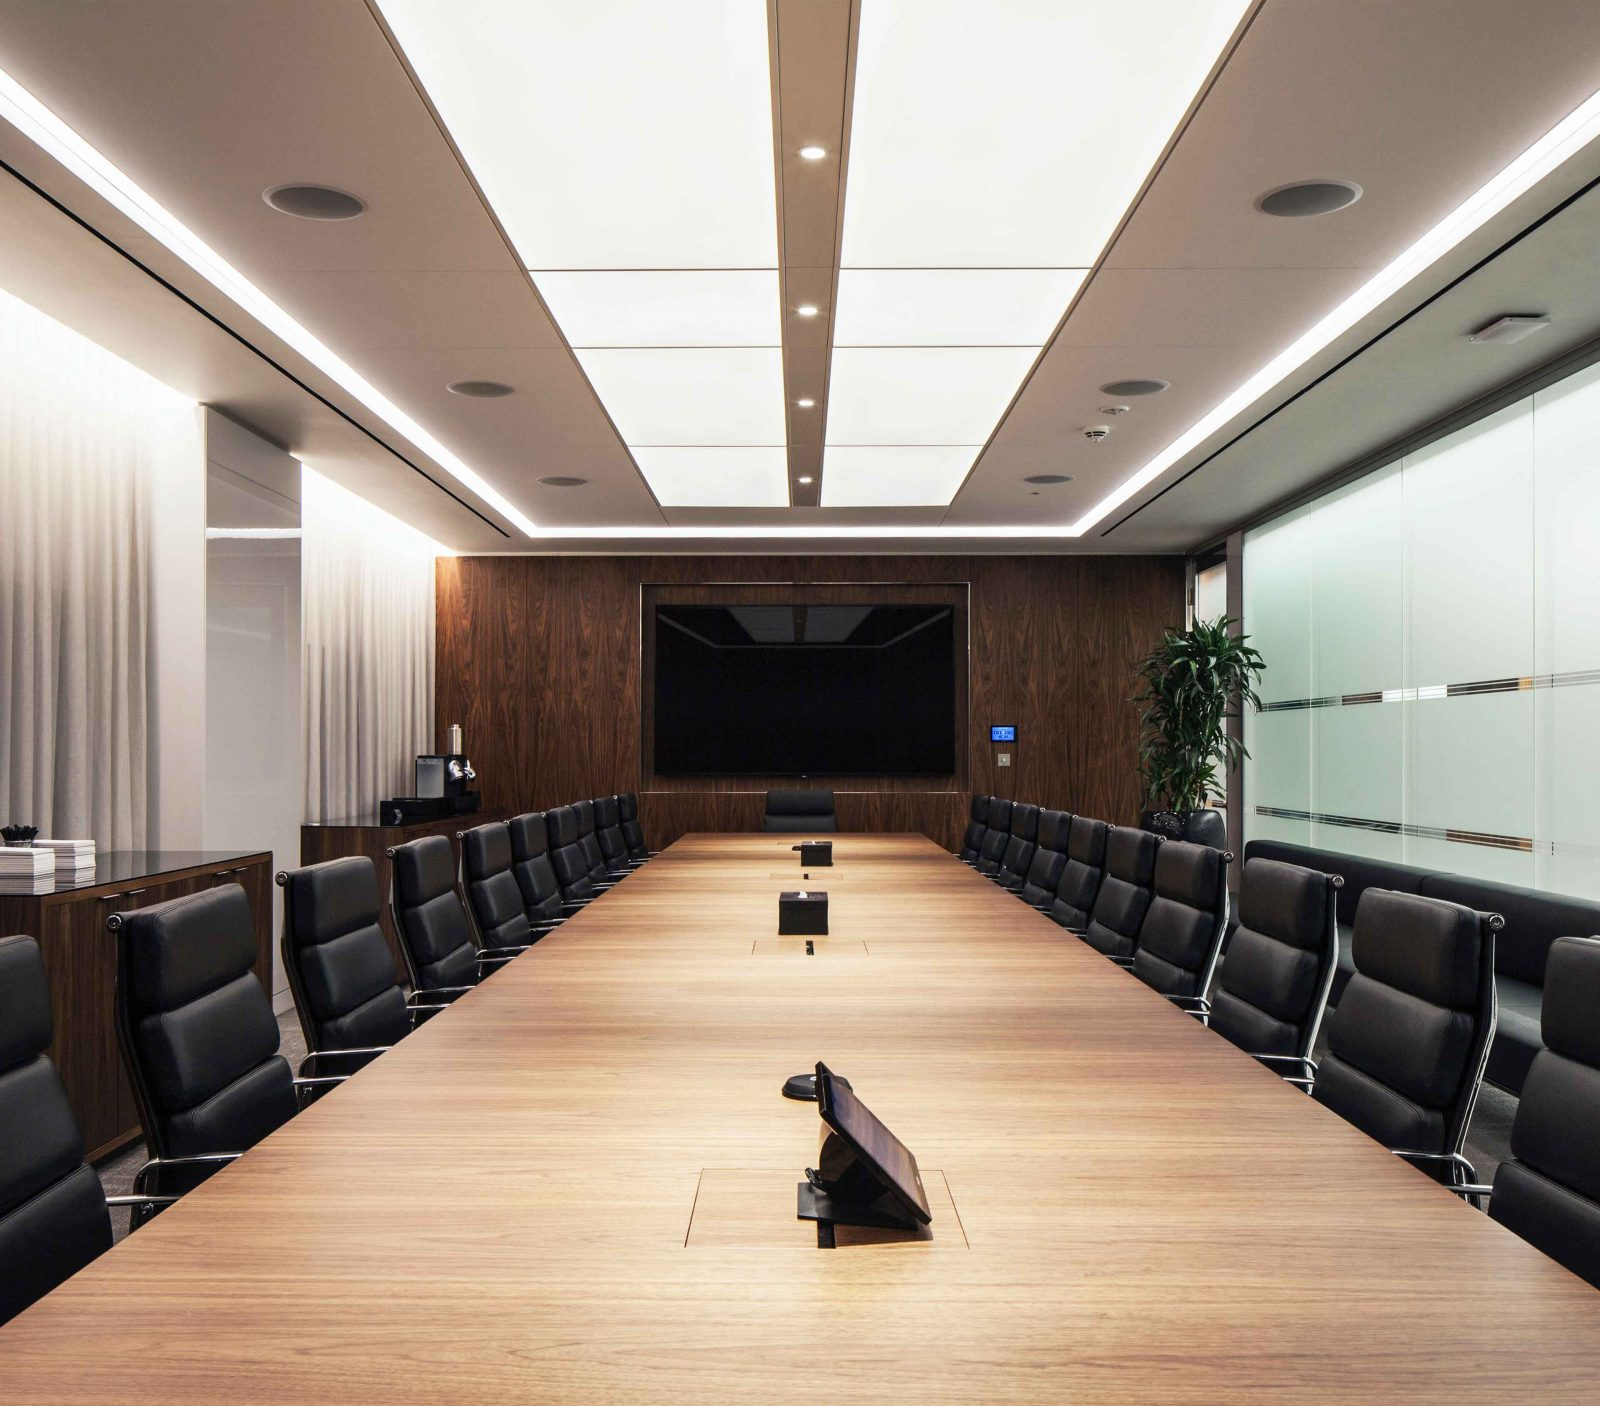 Architectural Lighting Conference Boardroom Corporate Office Illuminated Ceiling Panels Studio N